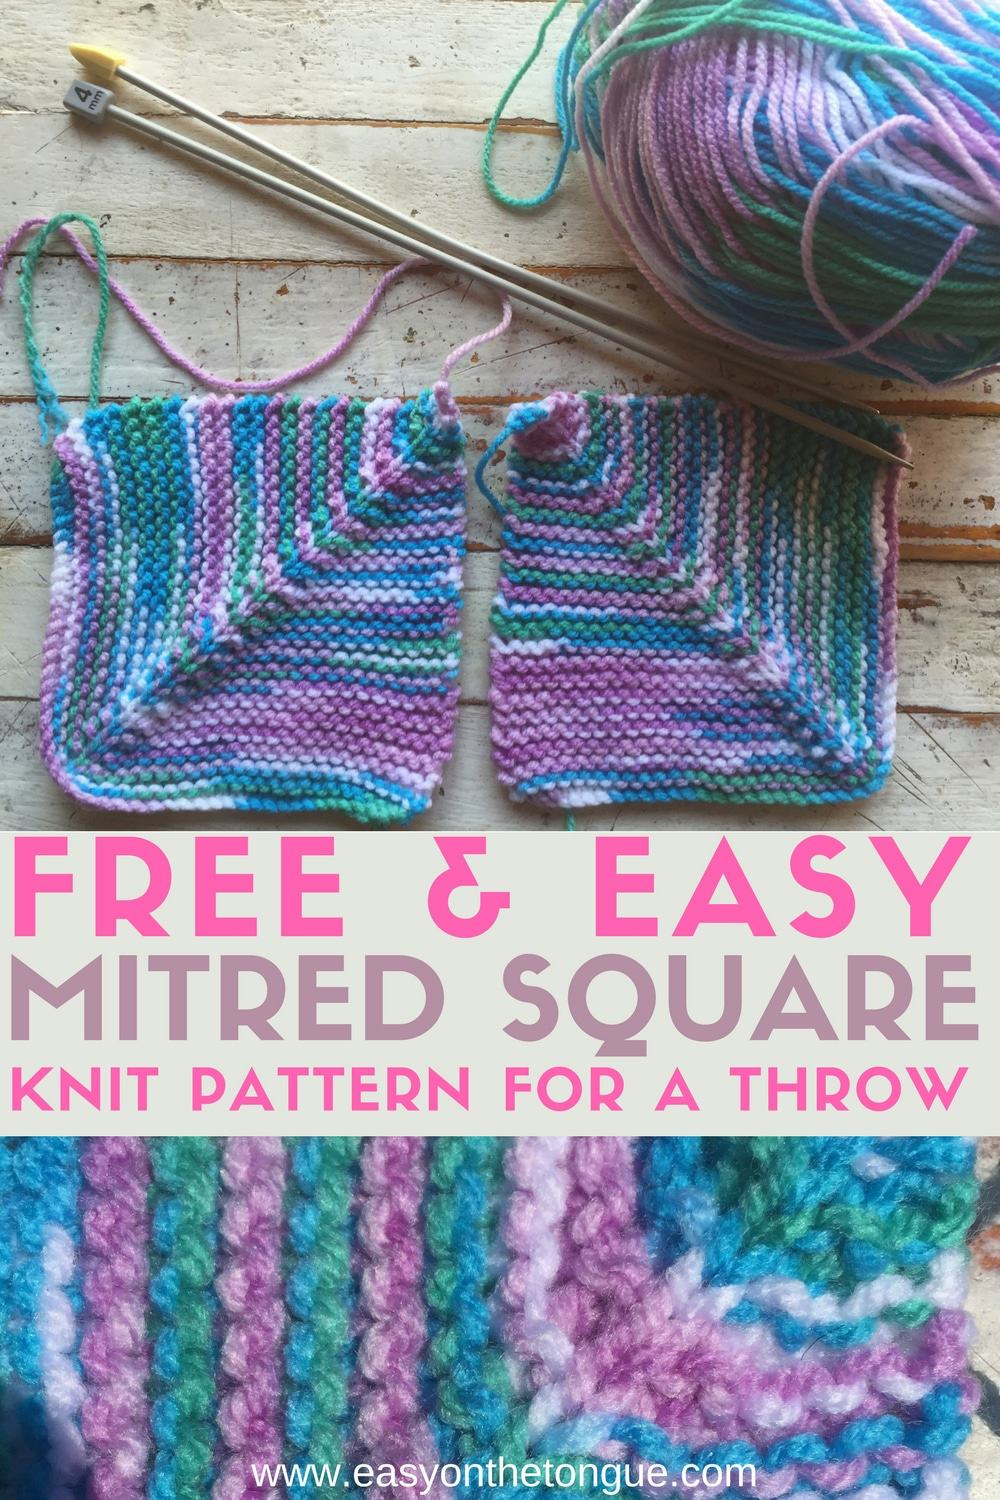 How to Knit Mitered Lace Square - Free Pattern Available